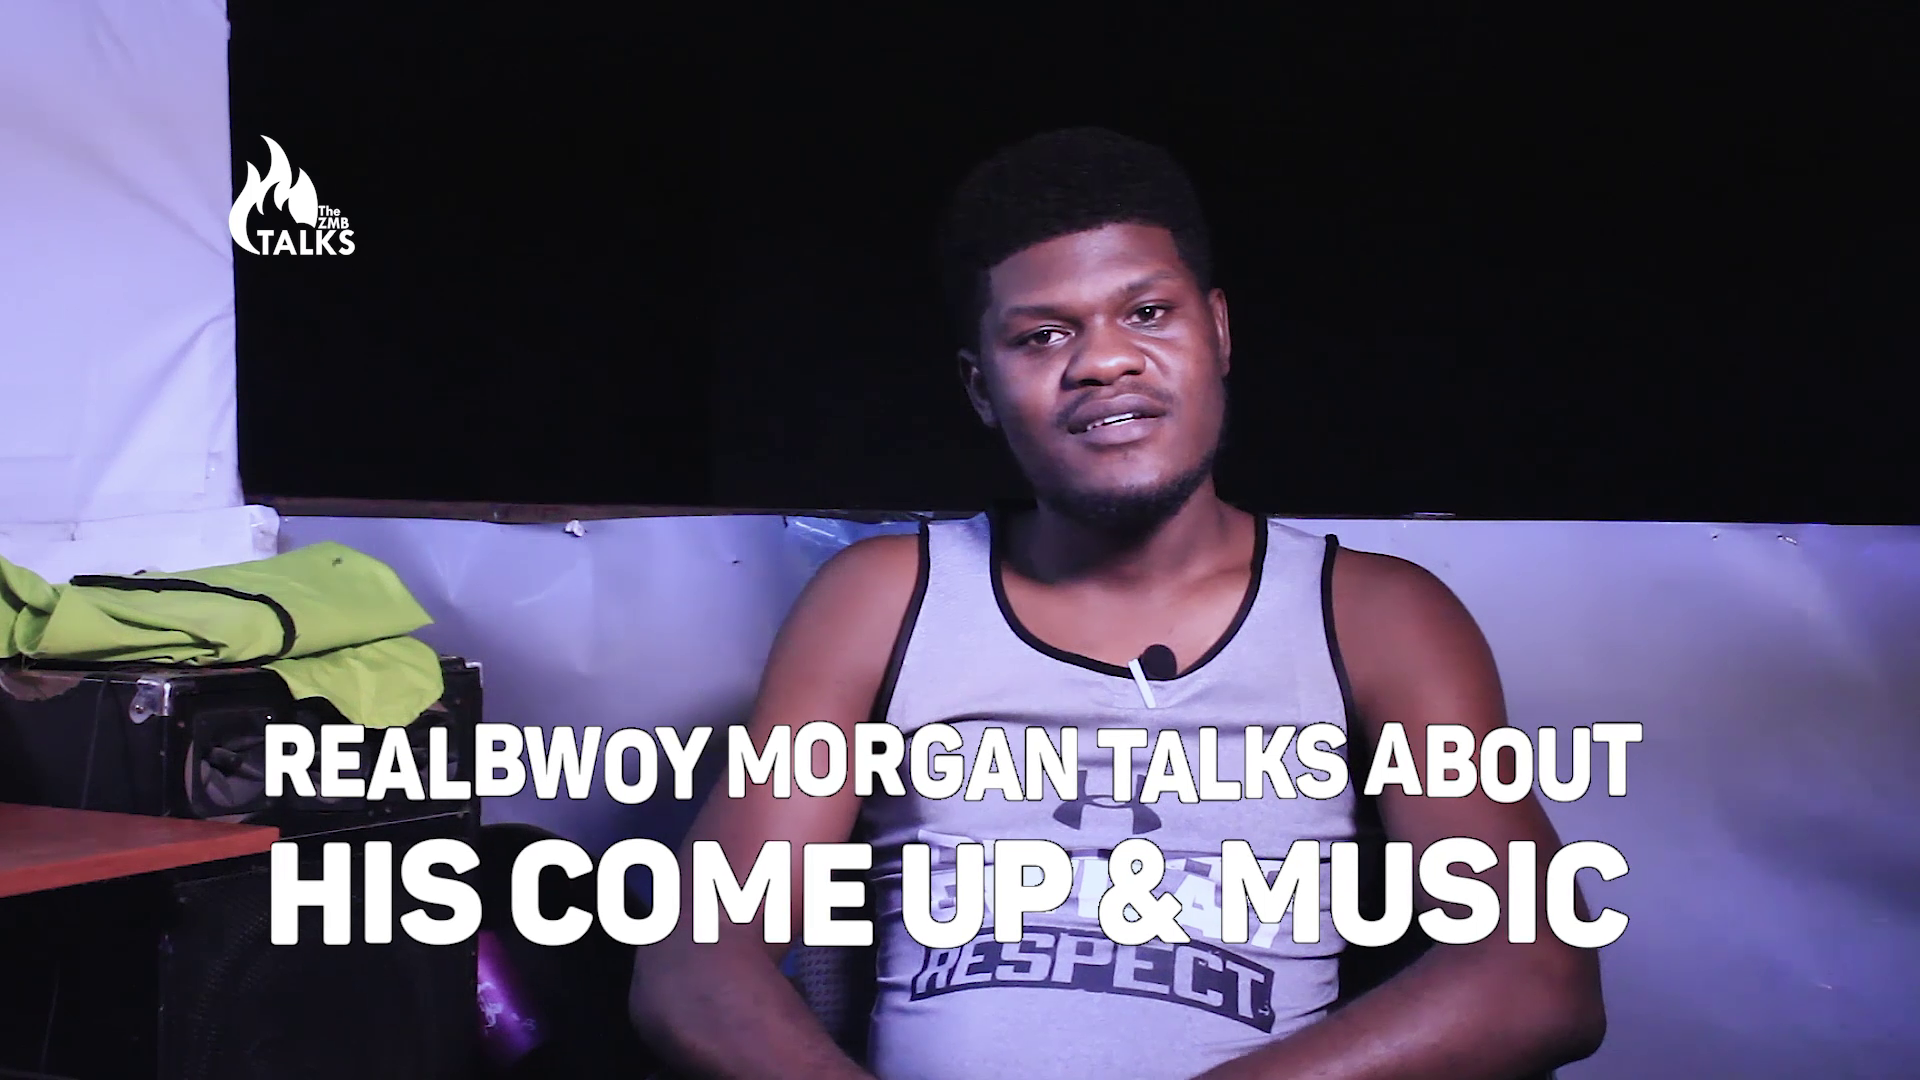 RealBwoy Morgan Talks About His Come Up & Music